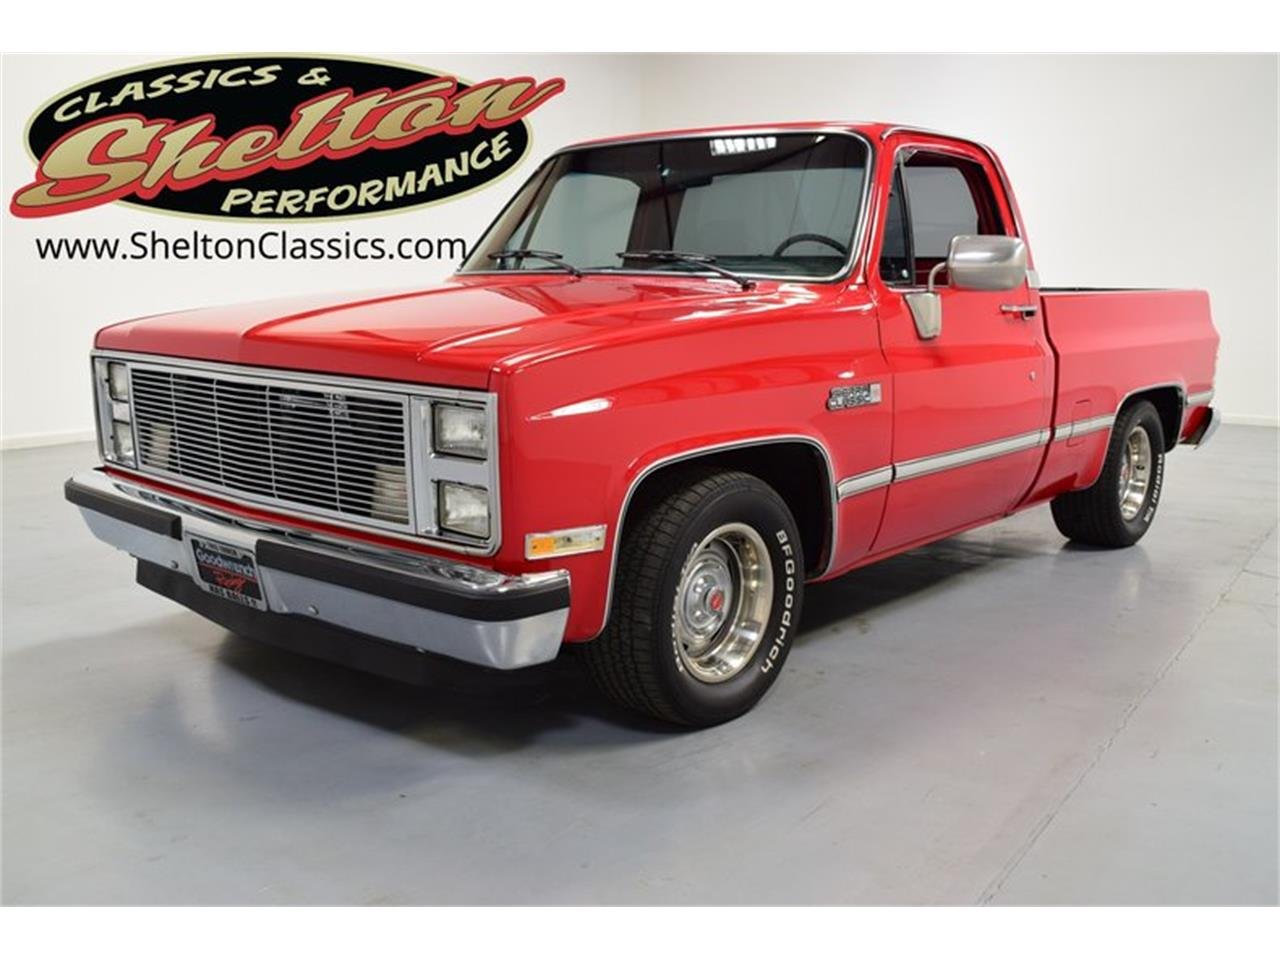 Large Picture of '85 GMC Sierra located in Mooresville North Carolina - $17,995.00 - PKKB